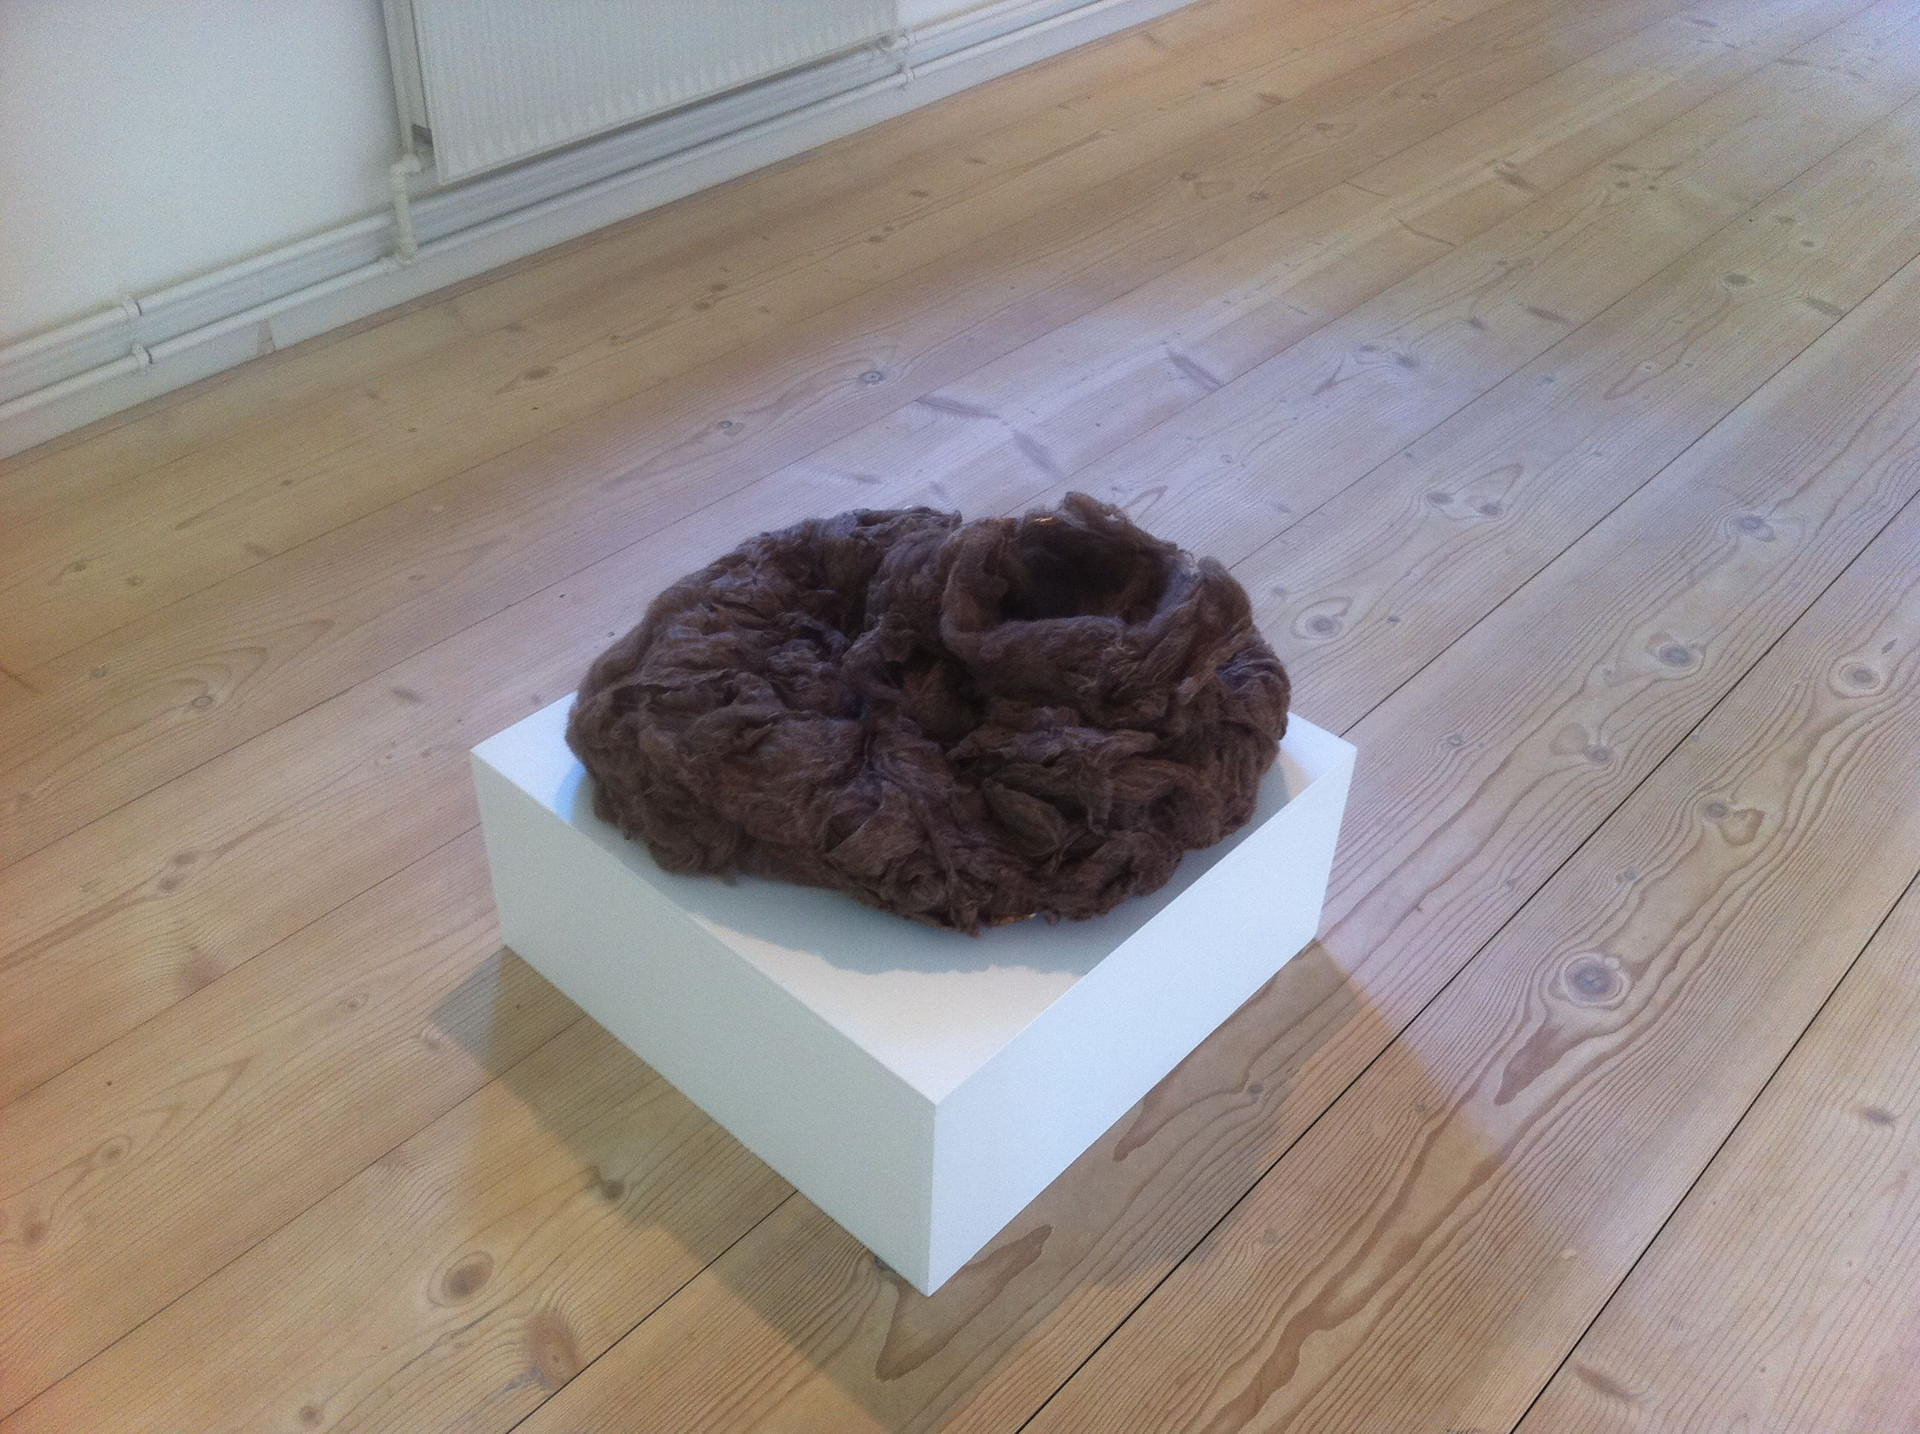 'Collapsed Cocoon', 2011.